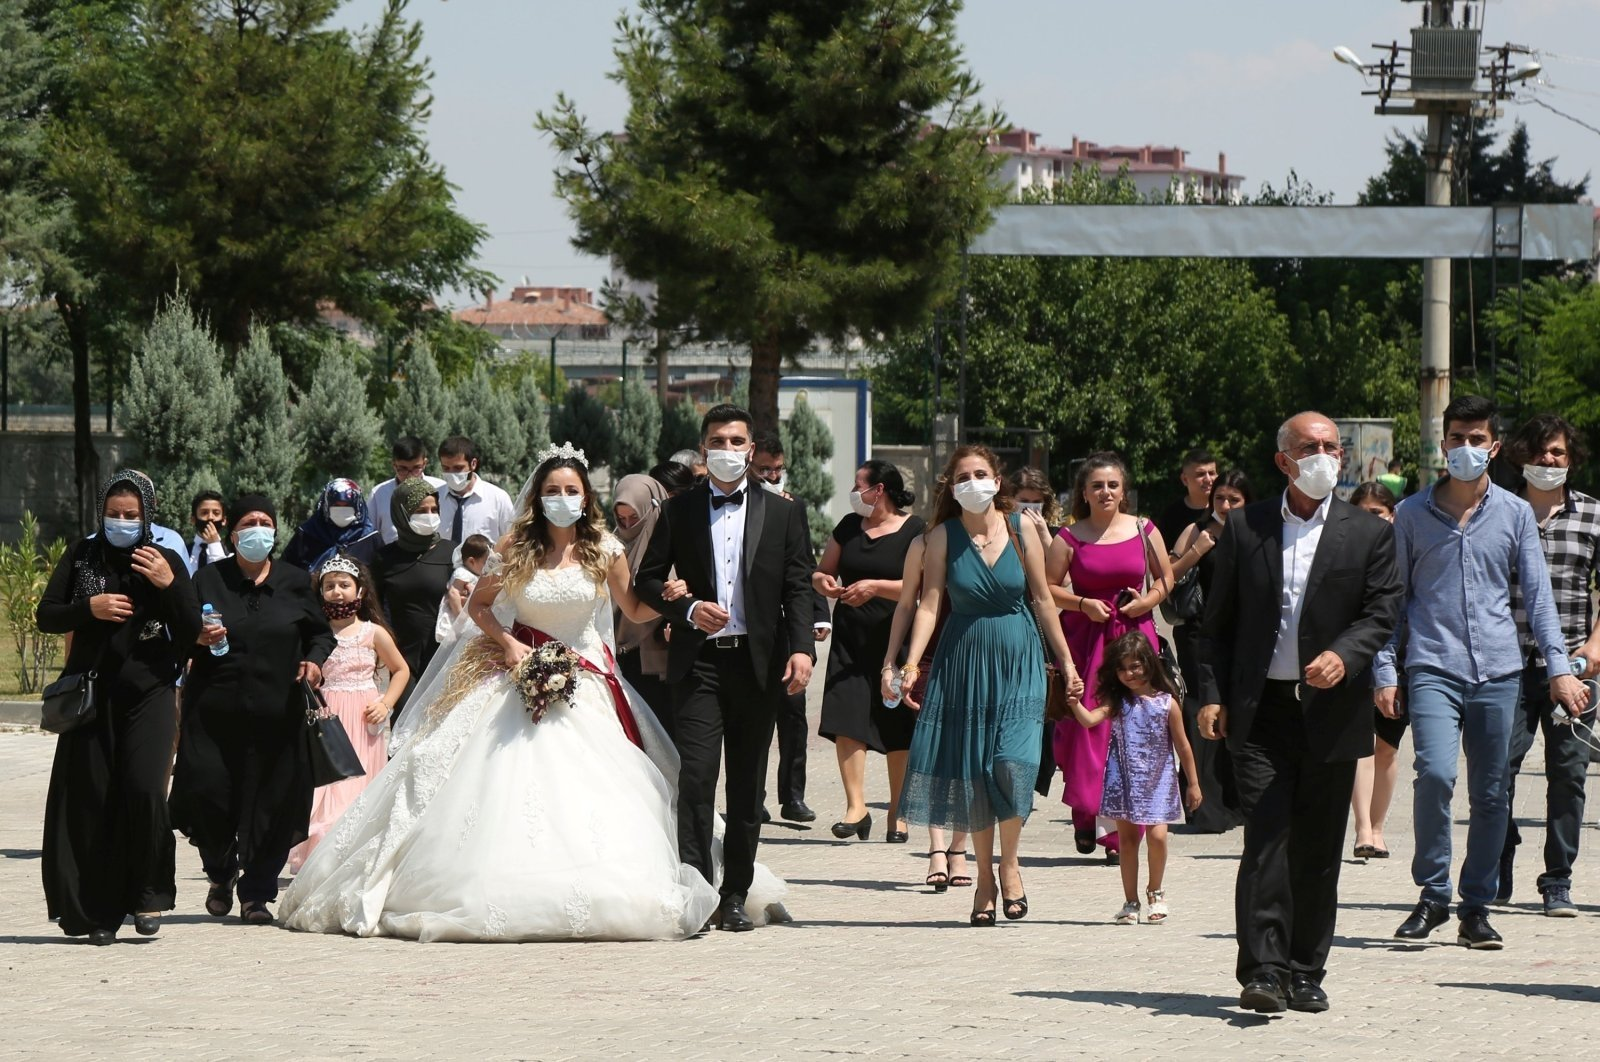 People with face masks walk with a bride and groom following a wedding ceremony in Diyarbakır, southeastern Turkey, July 2, 2020. (Reuters Photo)